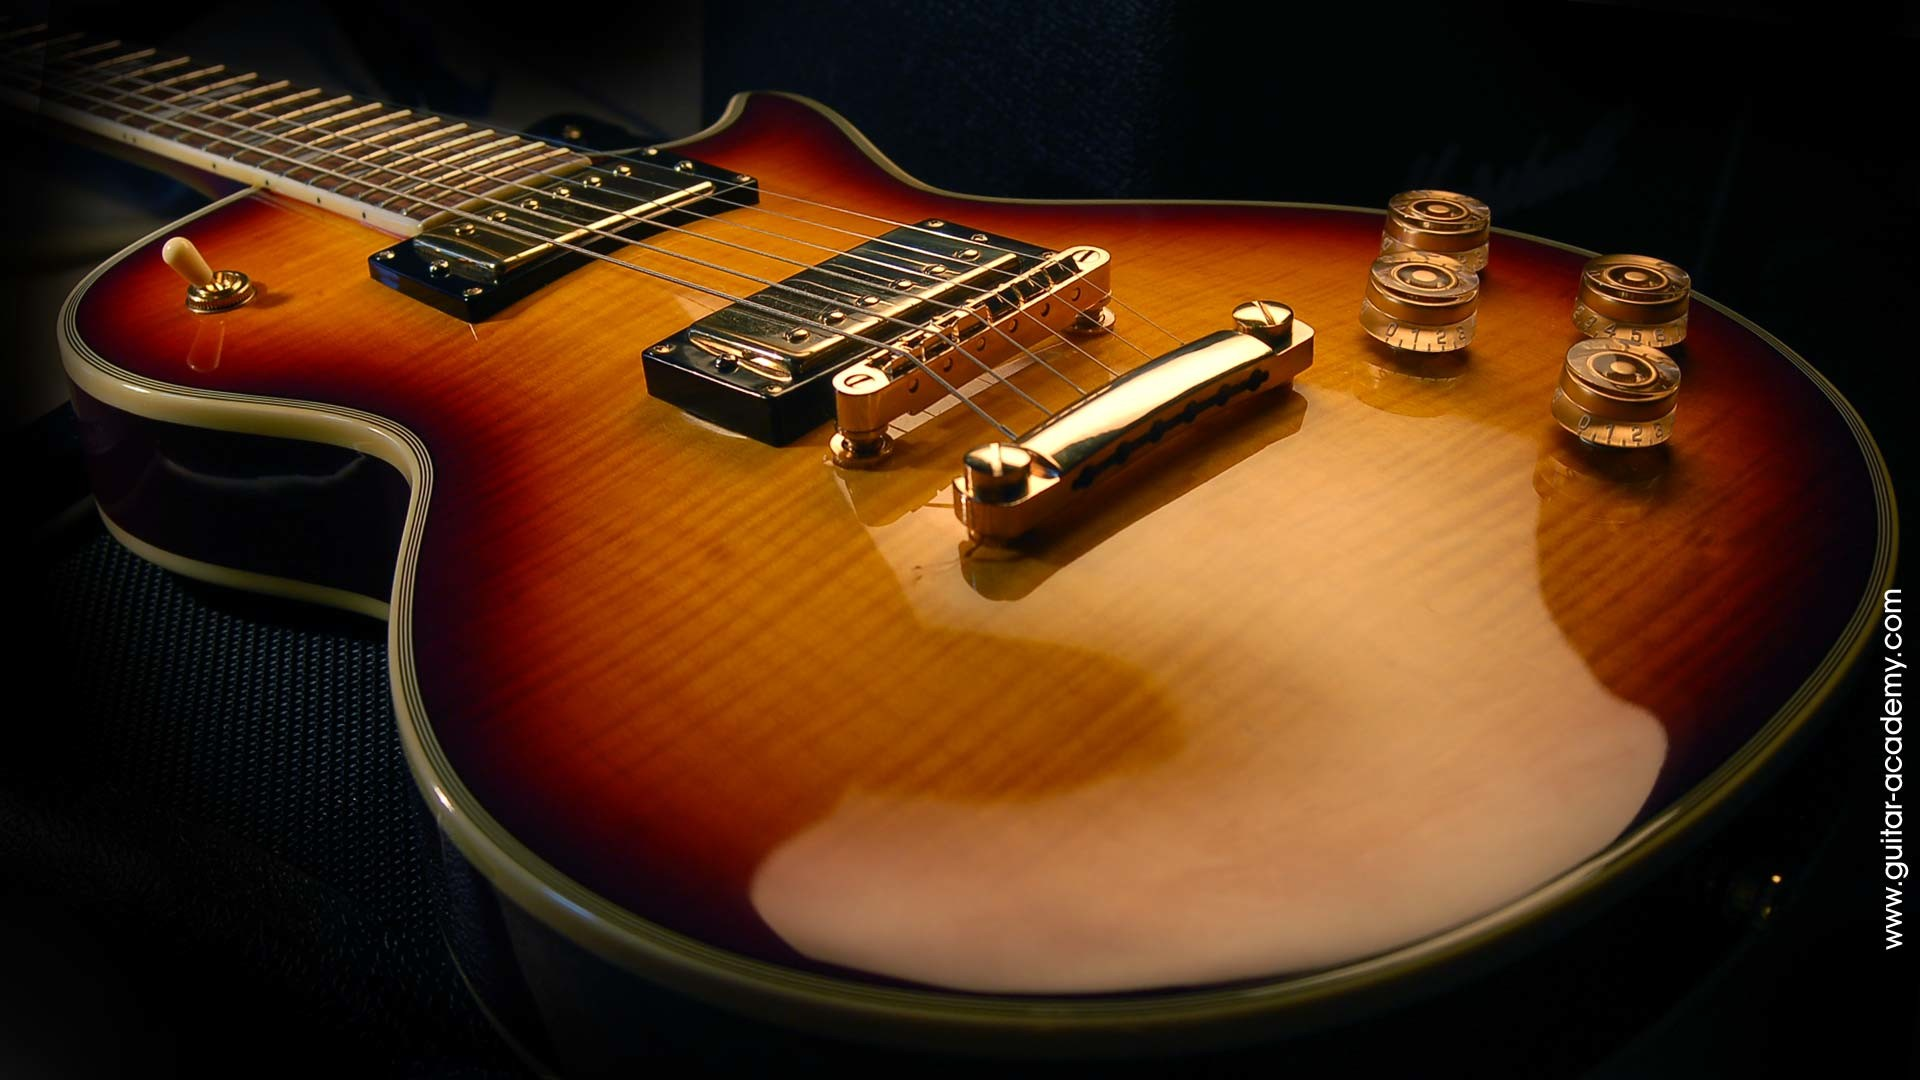 1920x1080 Guitar Wallpaper Gibson Les Paul Supreme Download Photo Collection Acoustic